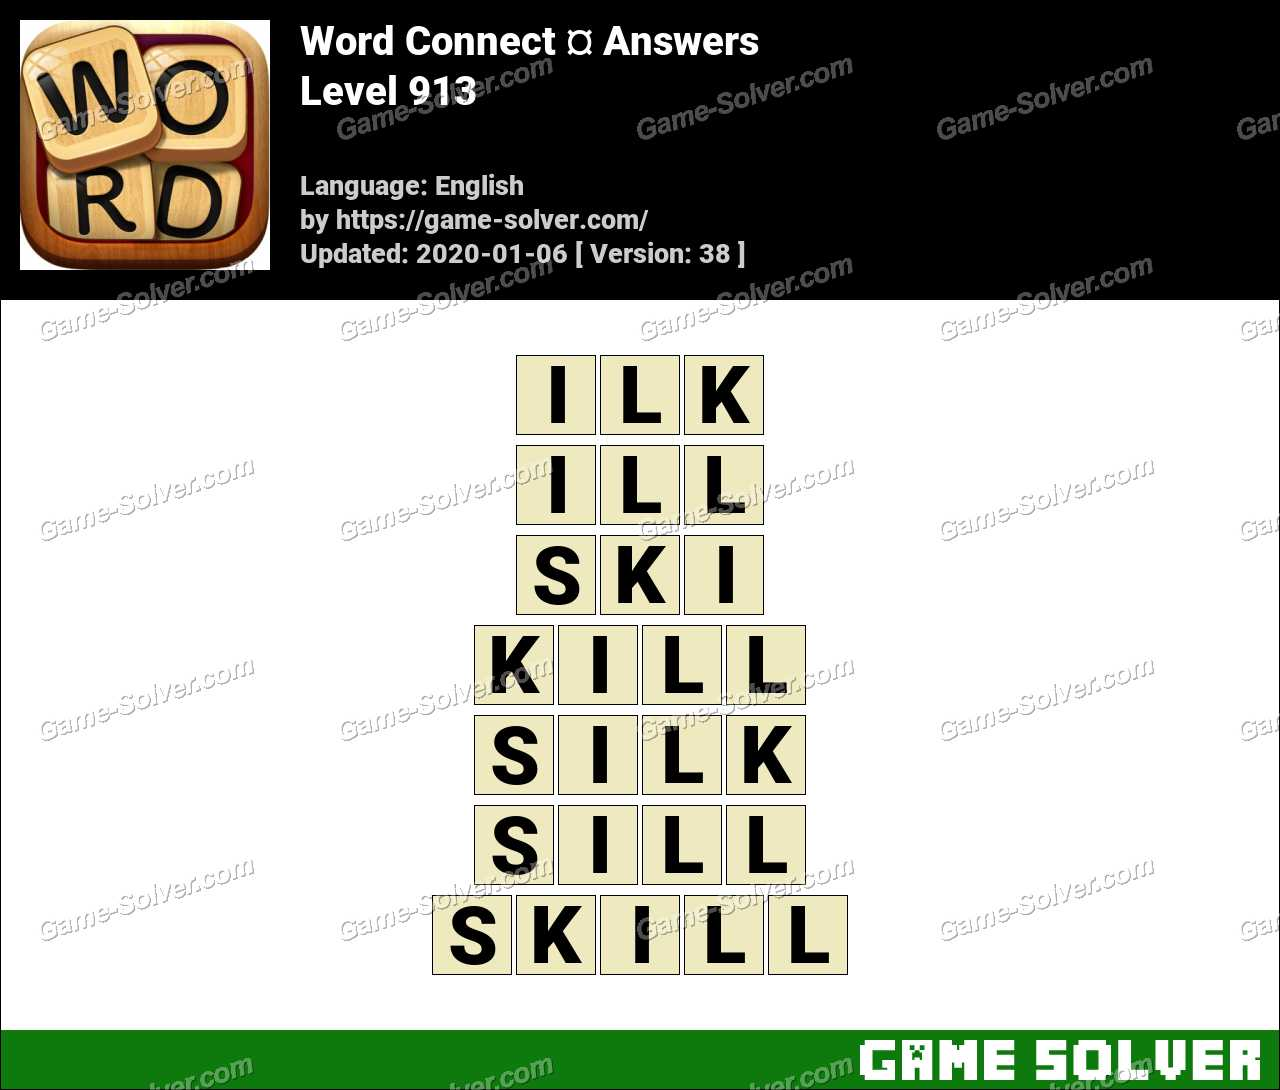 Word Connect Level 913 Answers